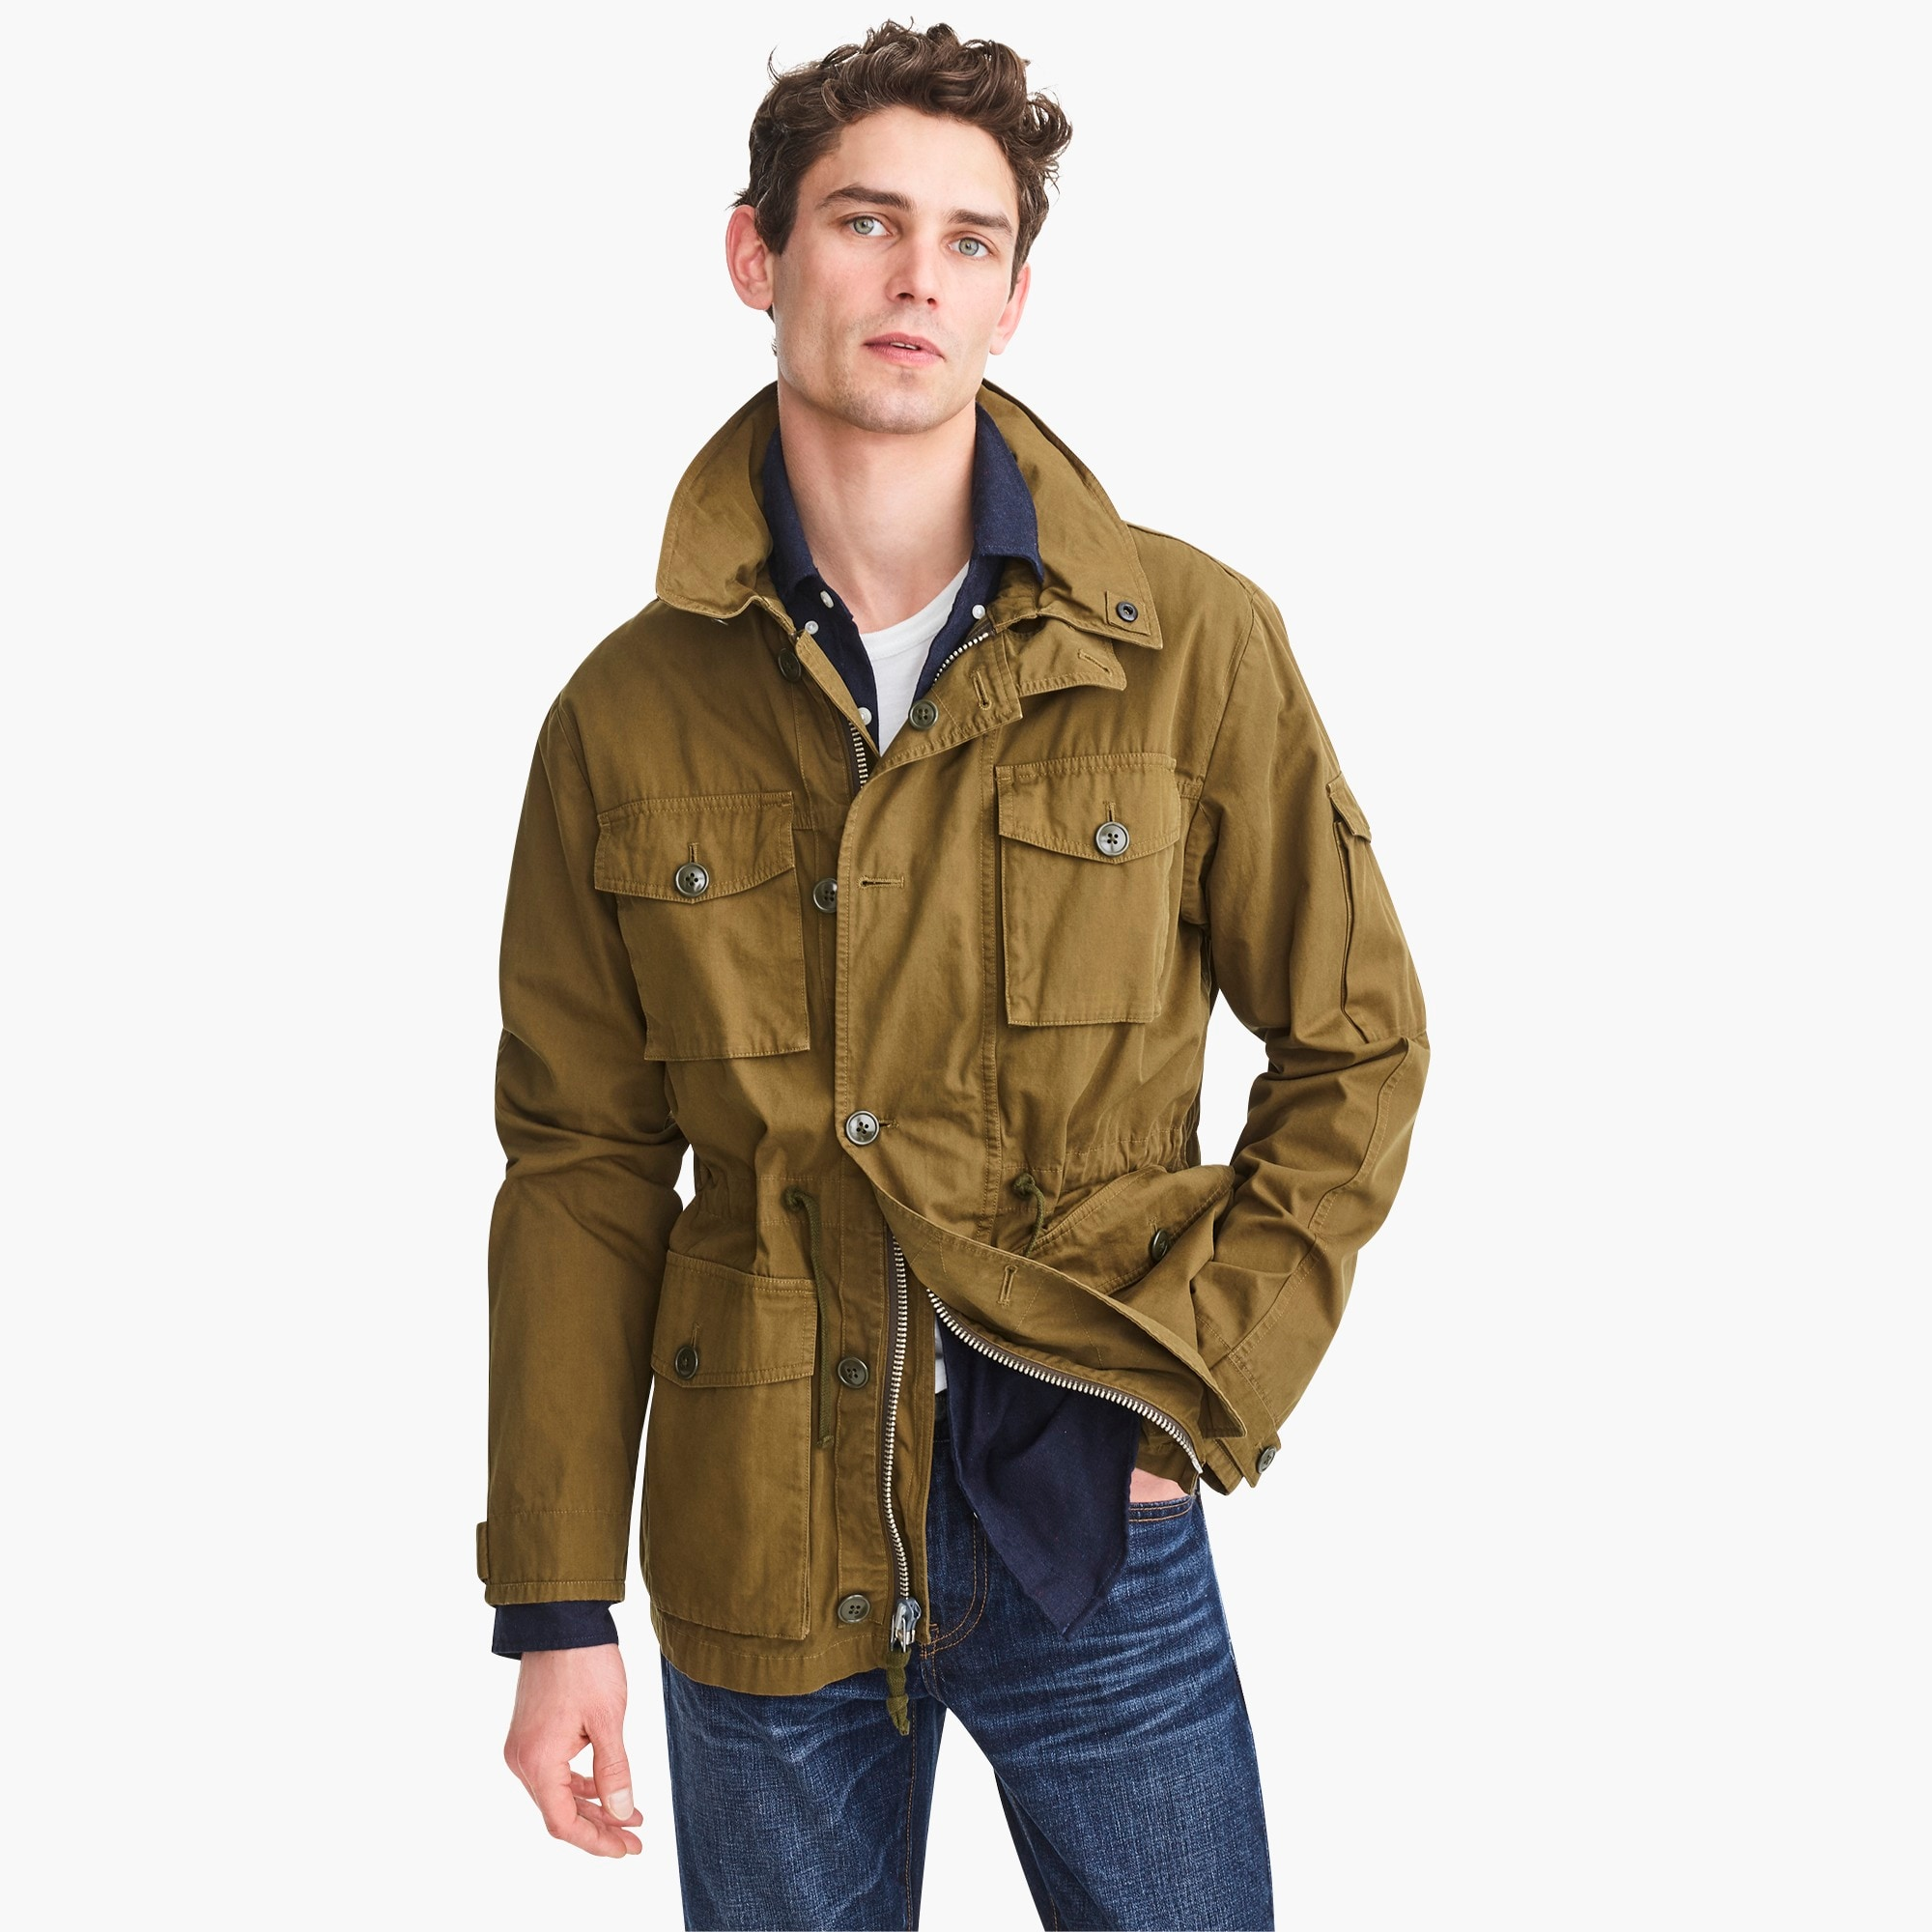 mens Field mechanic jacket